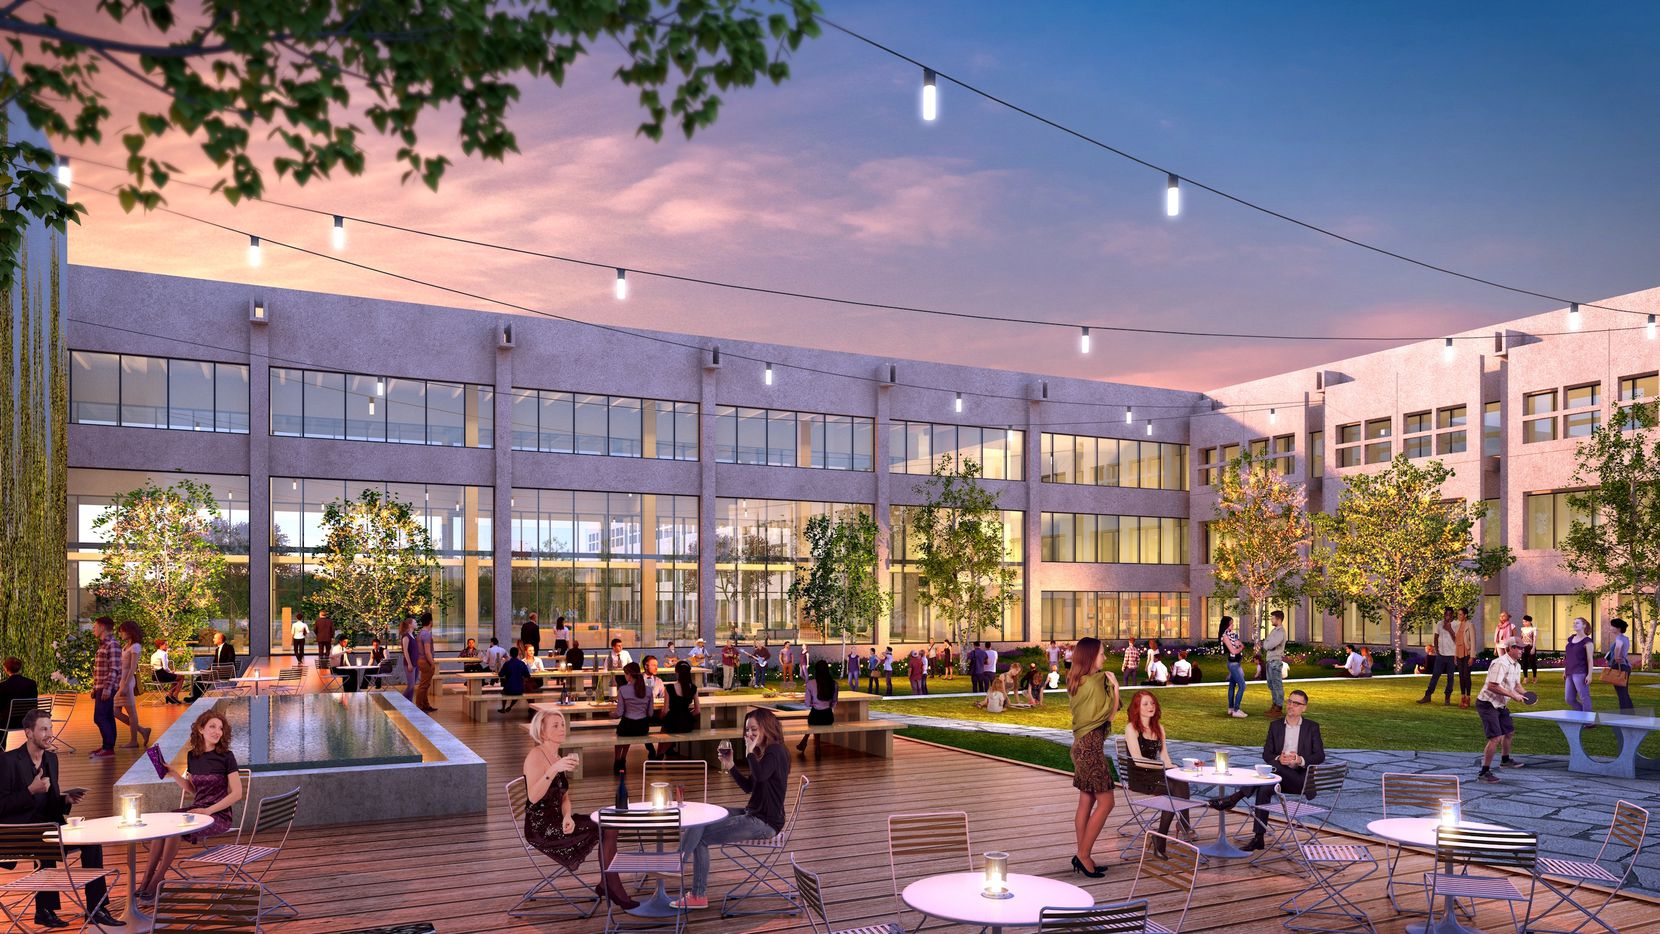 The company has turned the former Zale headquarters in Las Colinas into a new office environment it calls VariSpace.